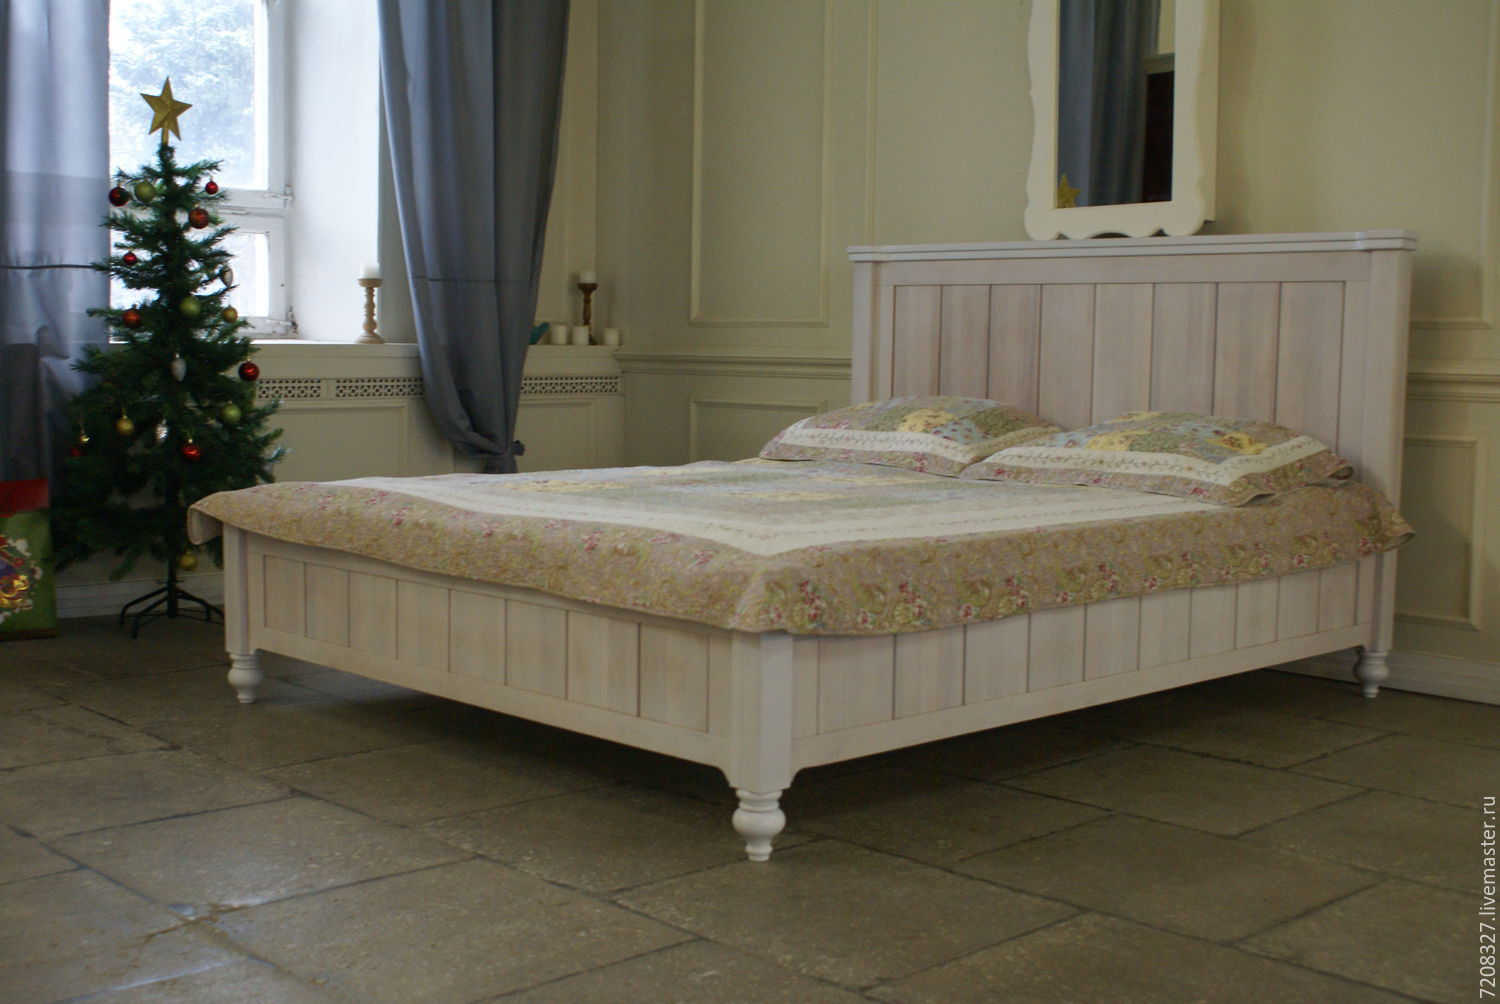 Bedroom made of beech ... bed made of solid beech wood with a lifting mechanism, we performed LFQHIJG